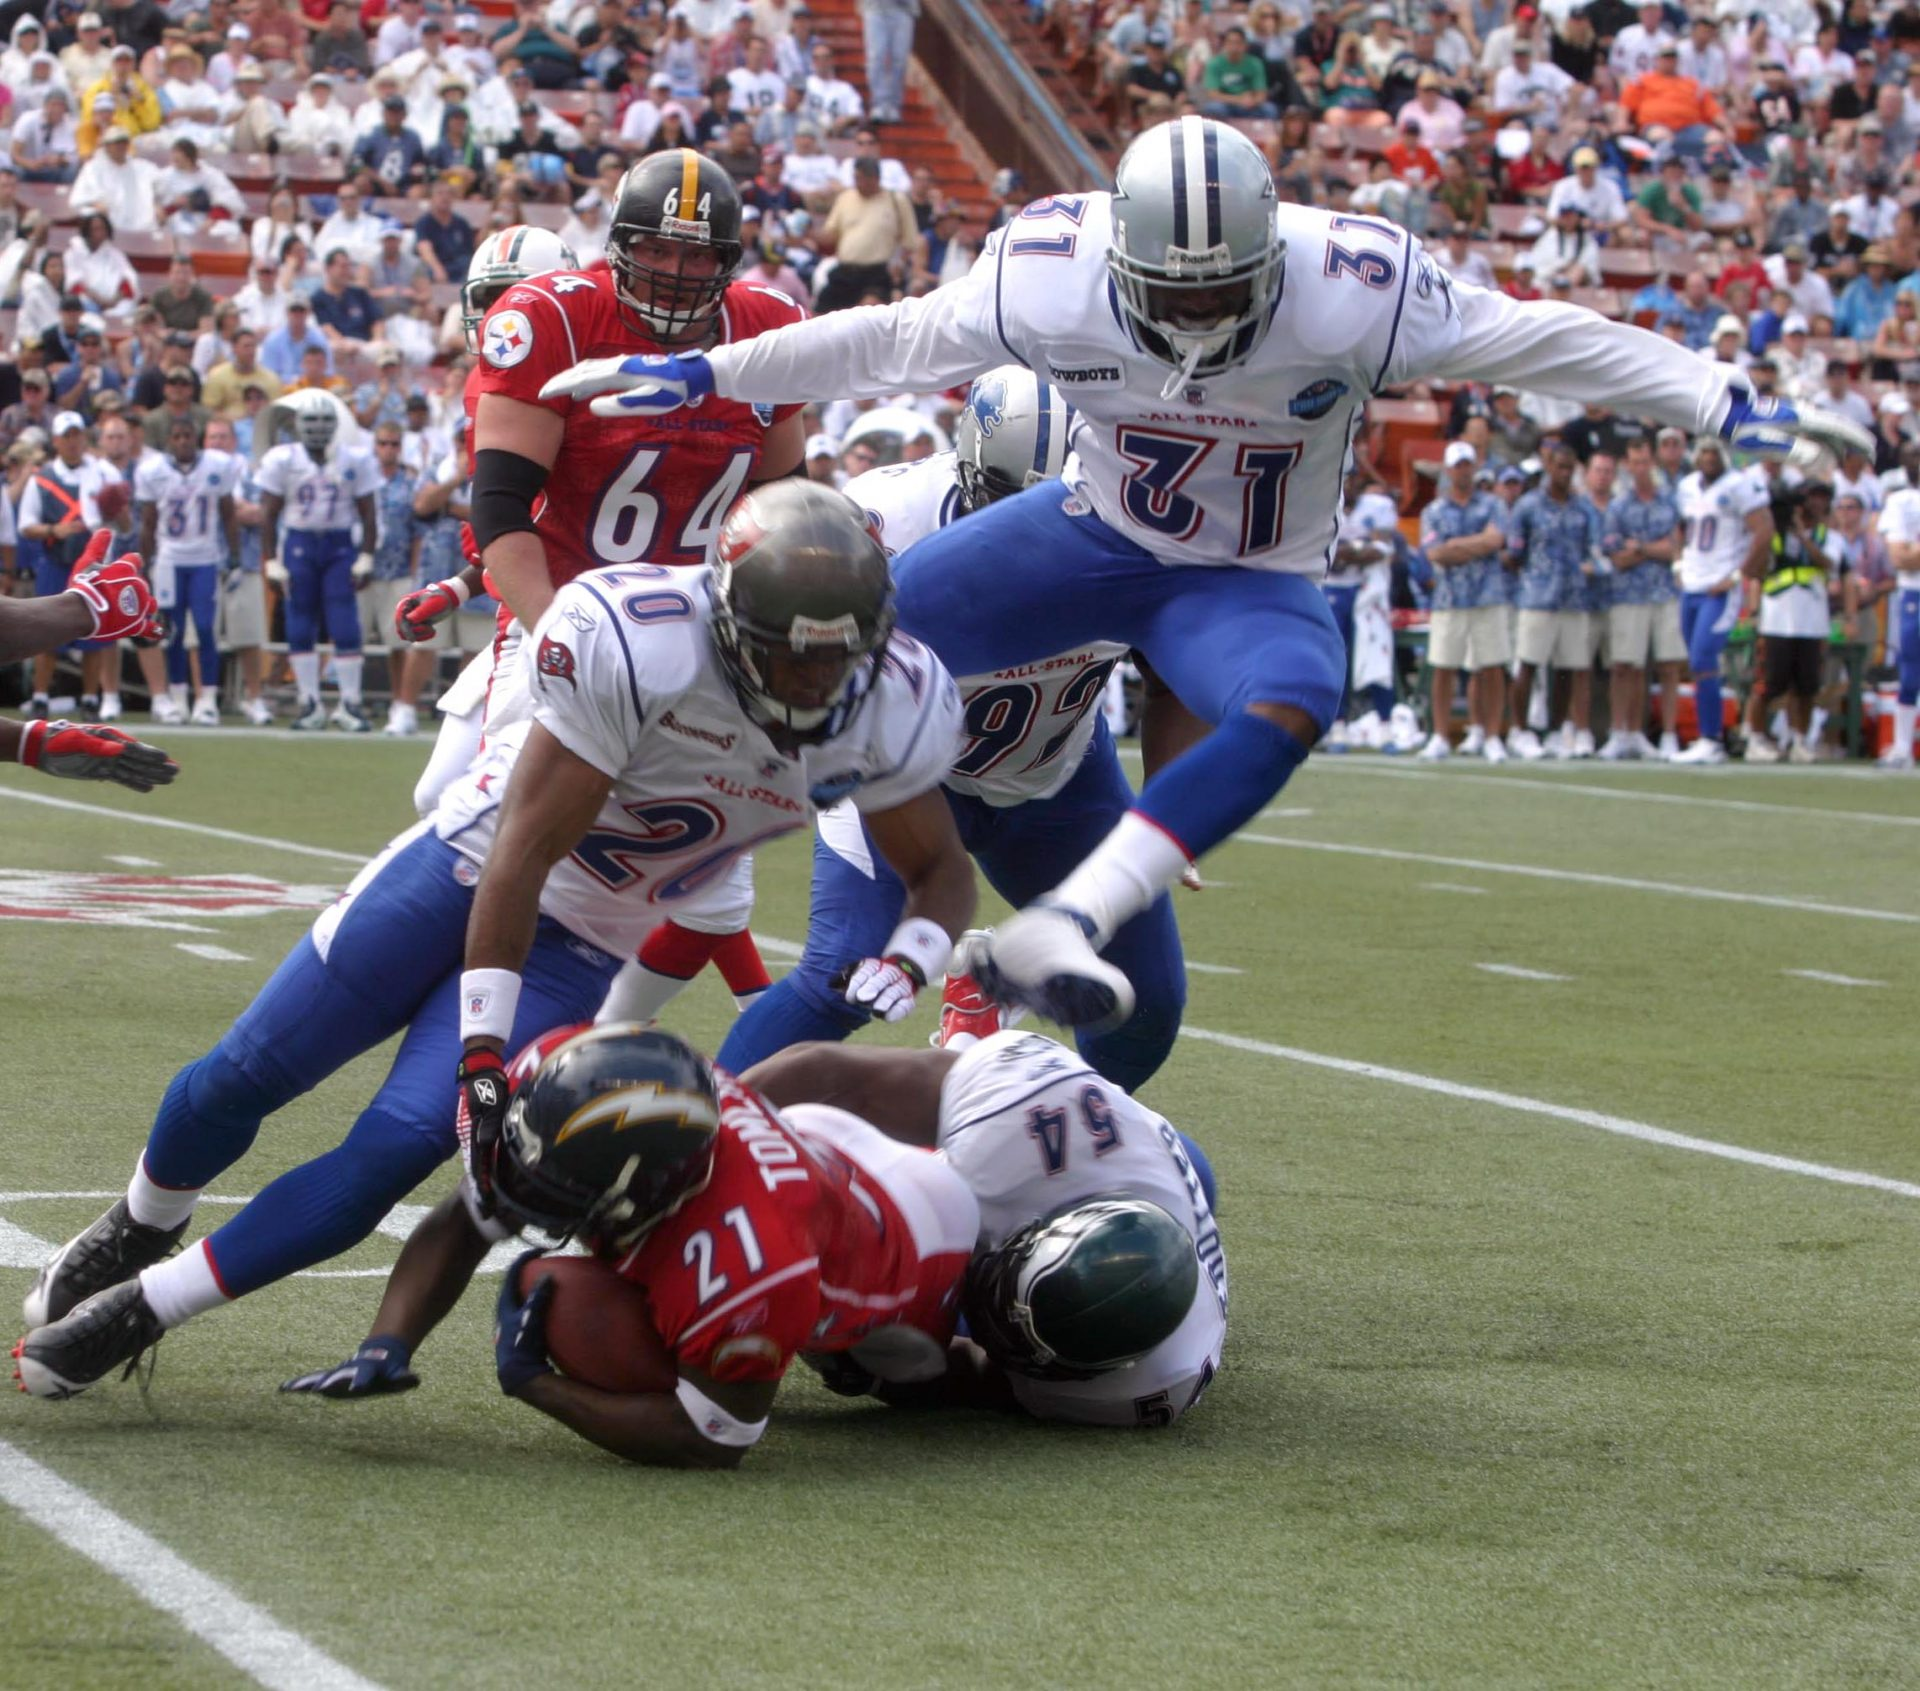 New York Brain Injury Lawyer Discusses the NFL Concussion Settlement